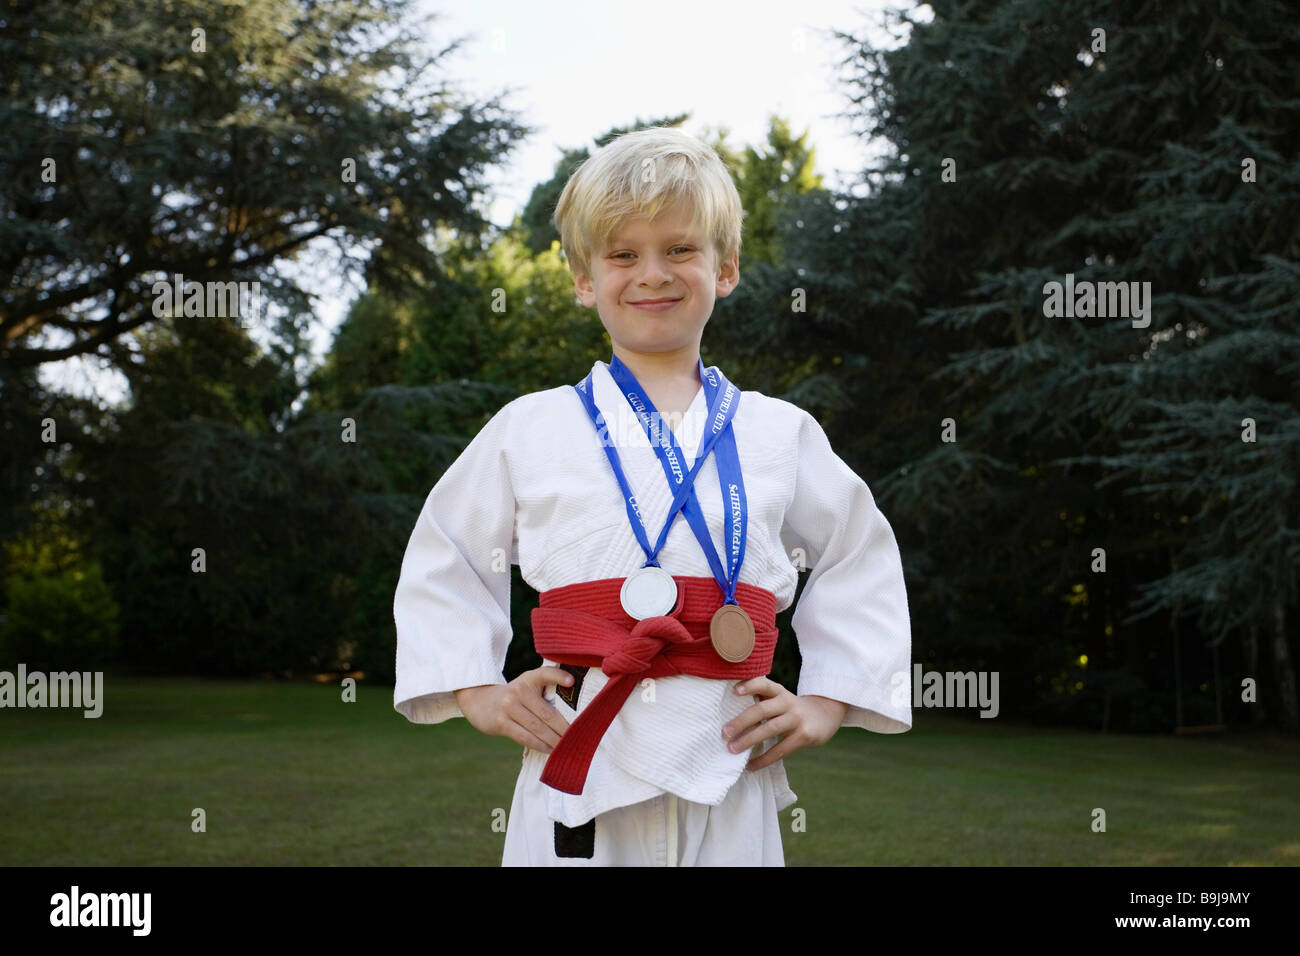 Boy in Karate Kit,  with medals - Stock Image